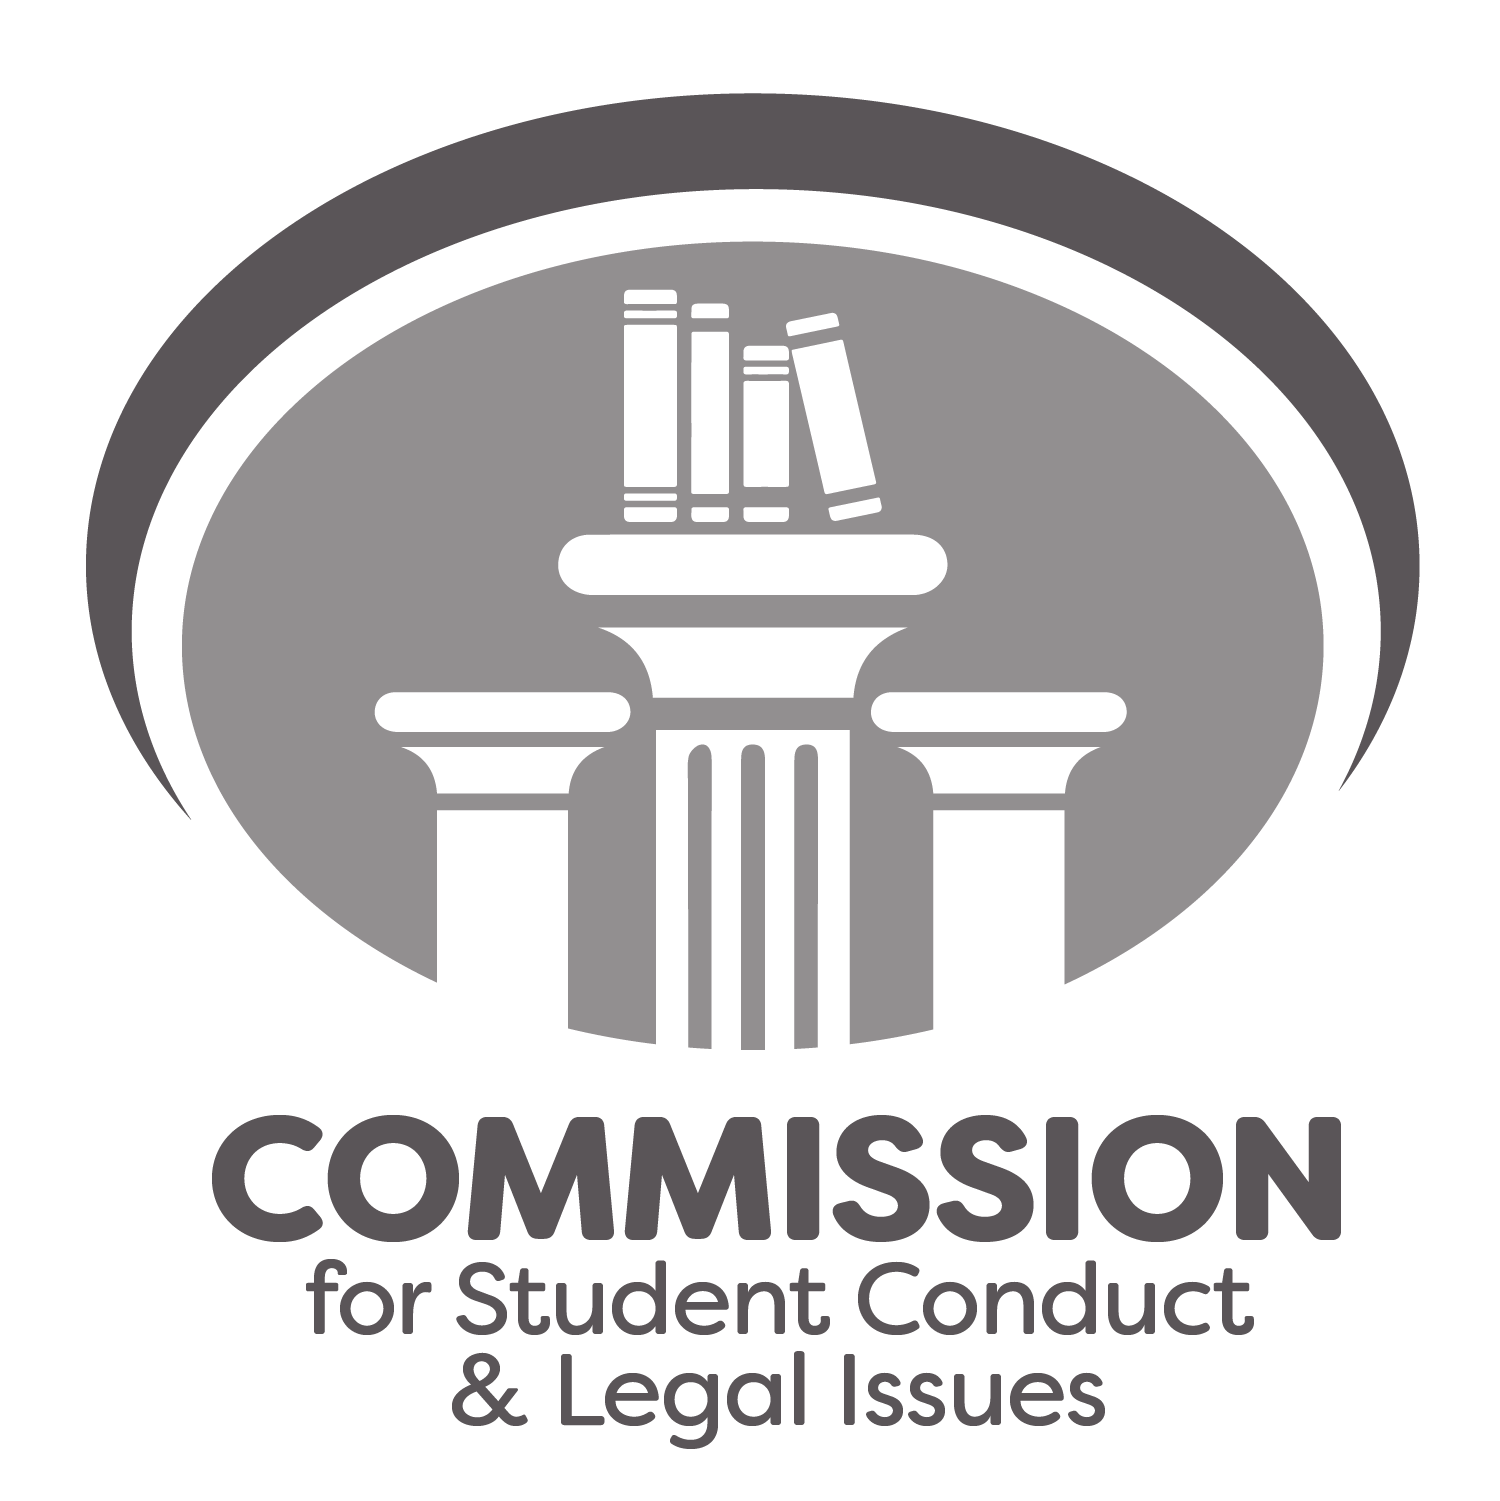 Commssion for Student Conduct & Legal Issues Logo